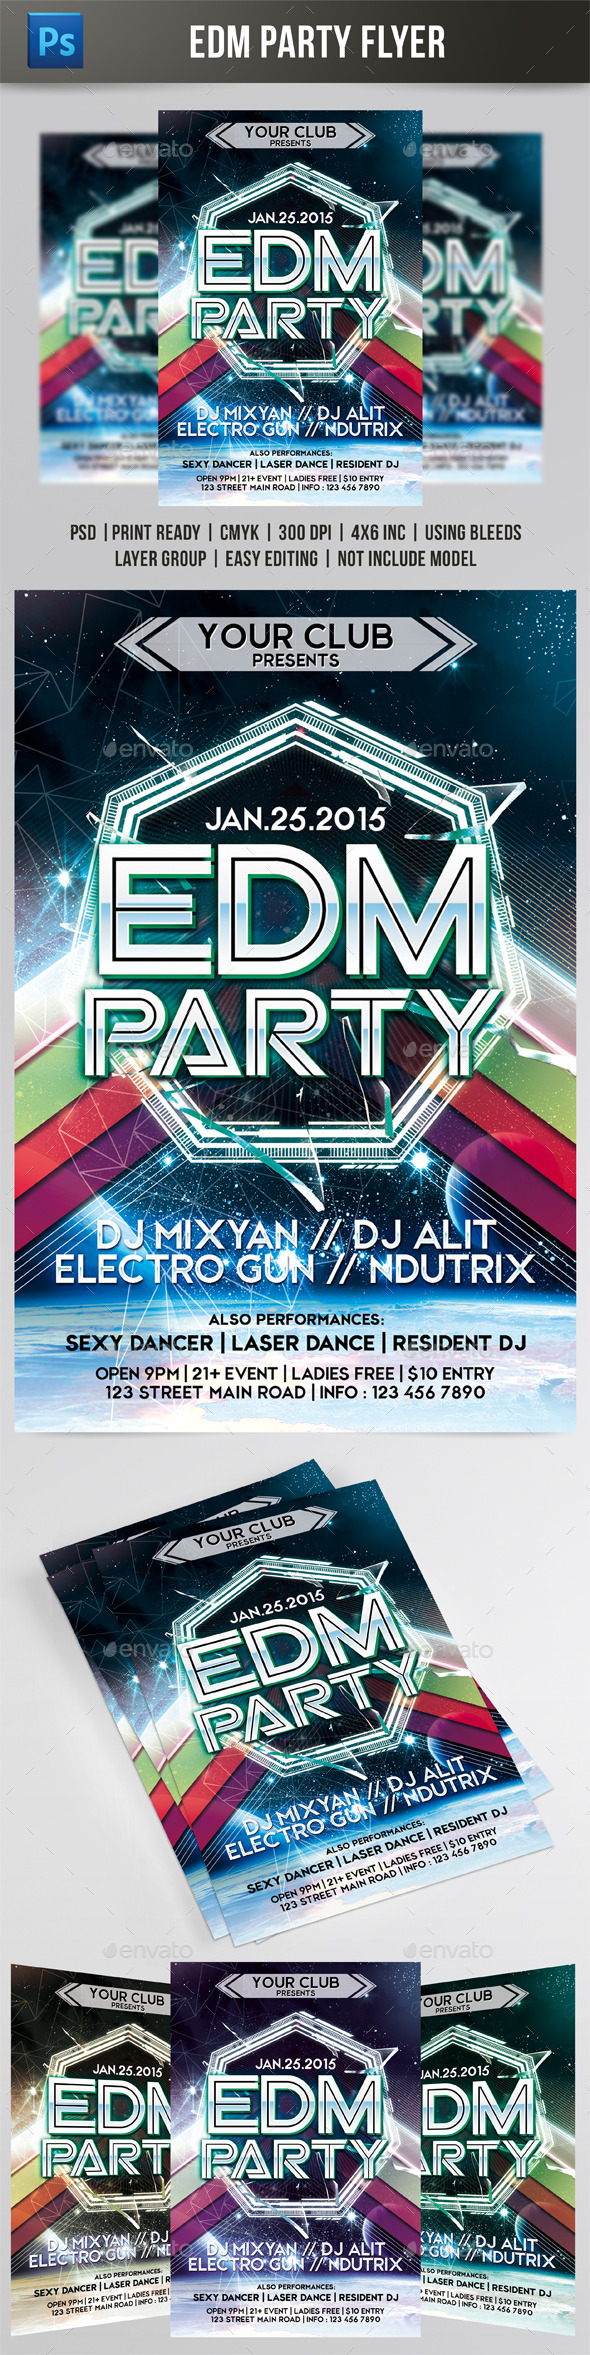 EDM Party Flyer - Events Flyers